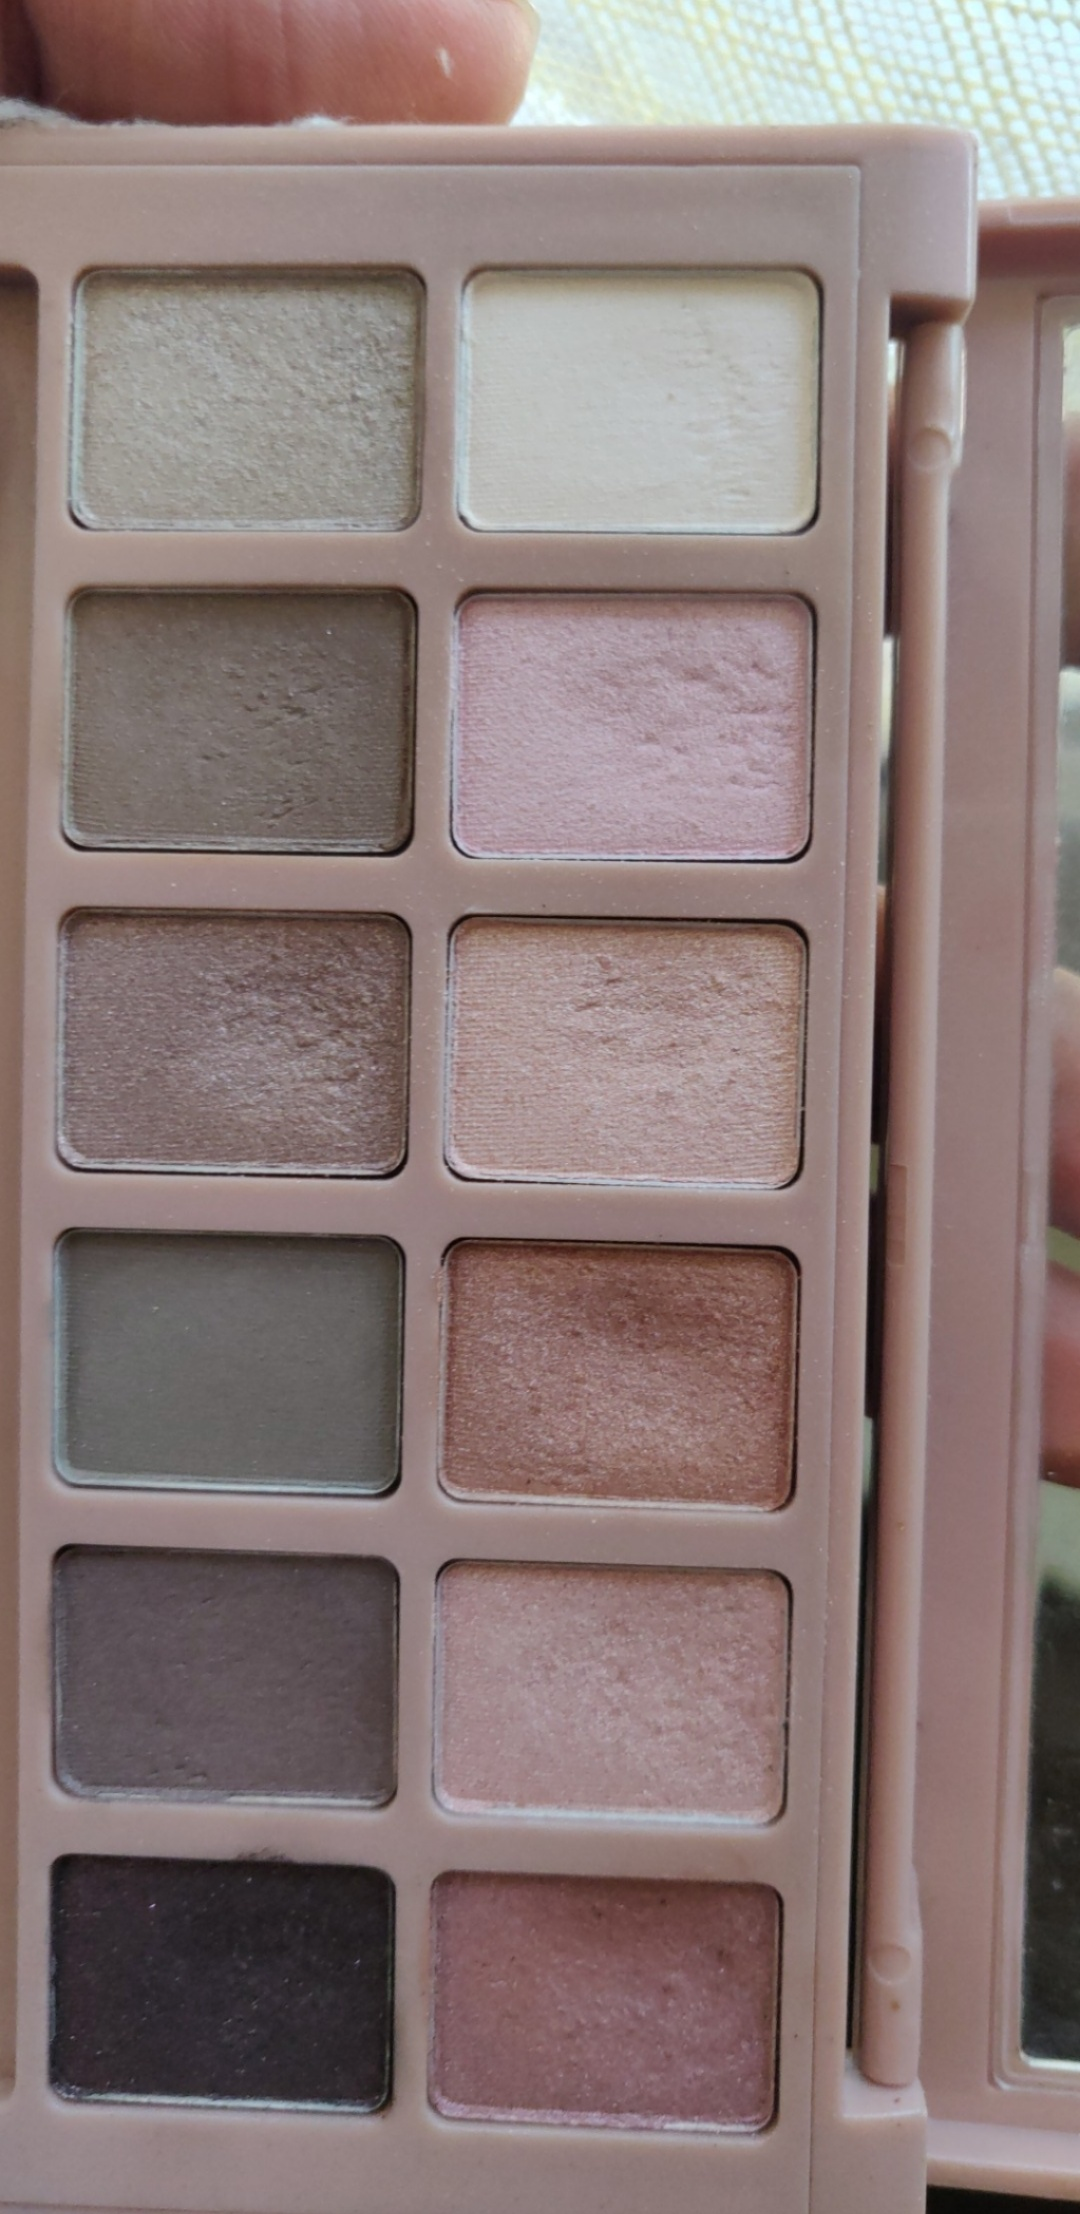 Maybelline New York The Blushed Nudes Palette-Affordable eyeshadow-By pooja_saboo